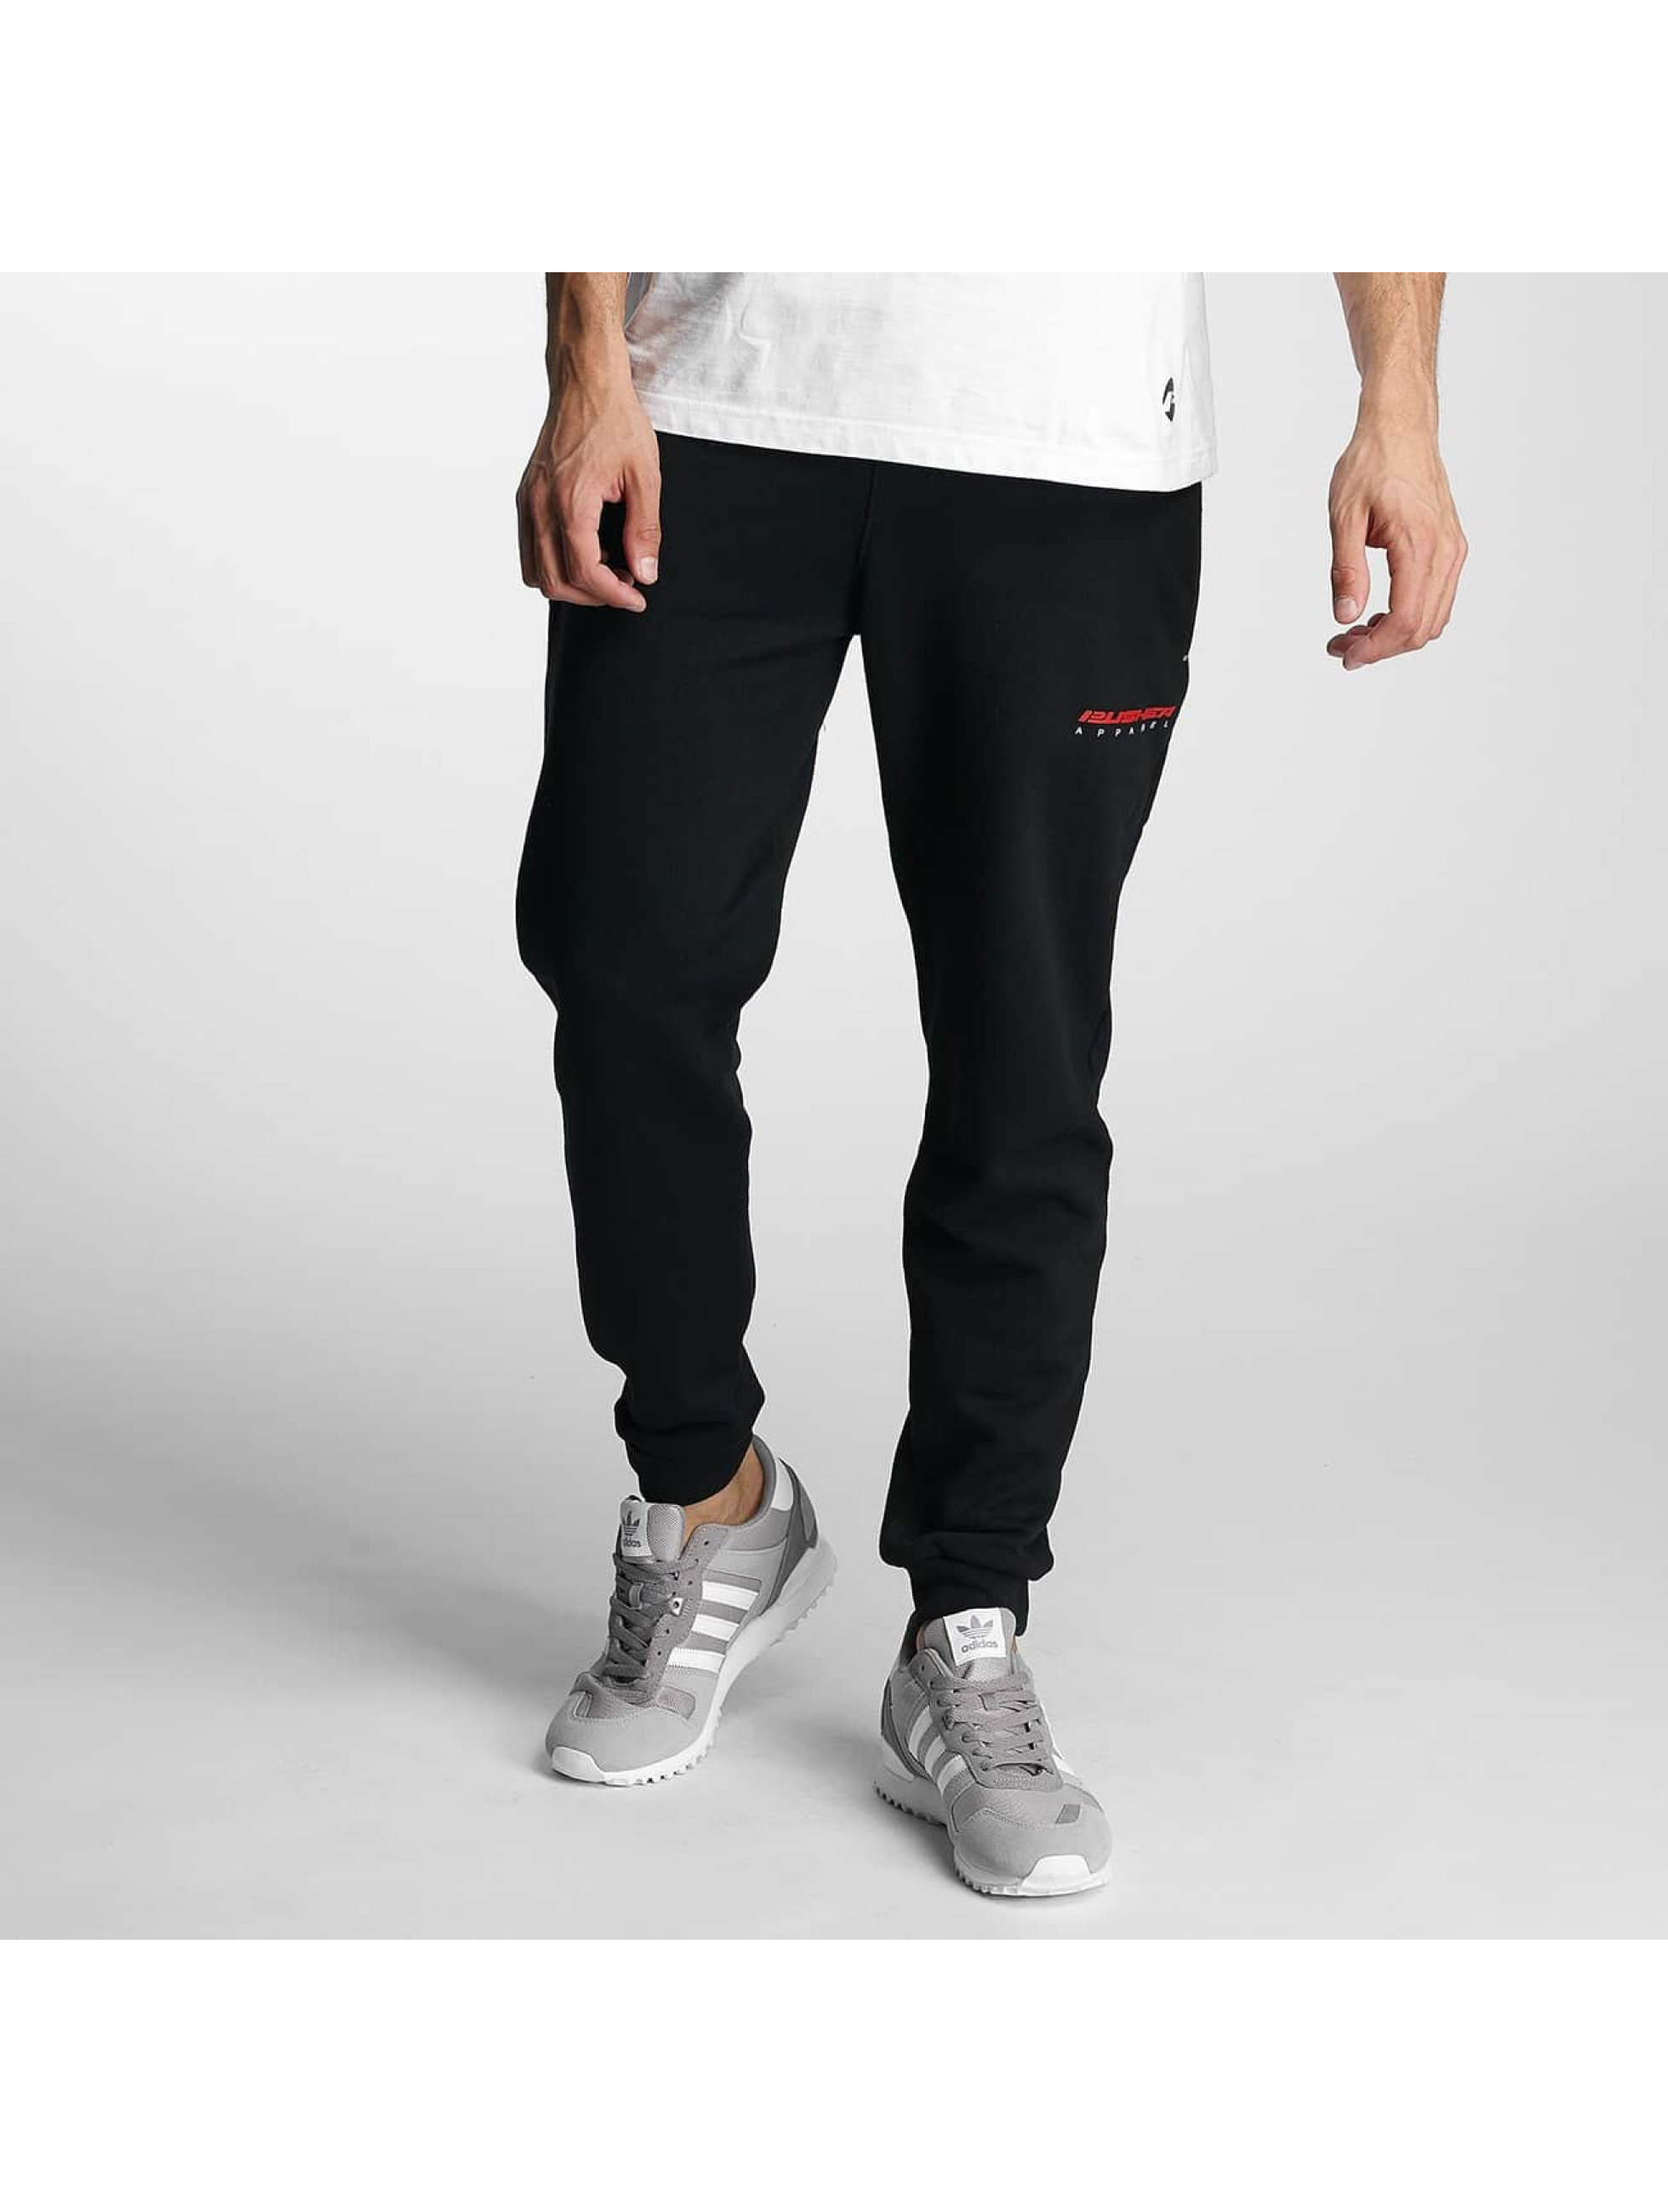 Pusher Apparel Jogging kalhoty 215 Jacking čern